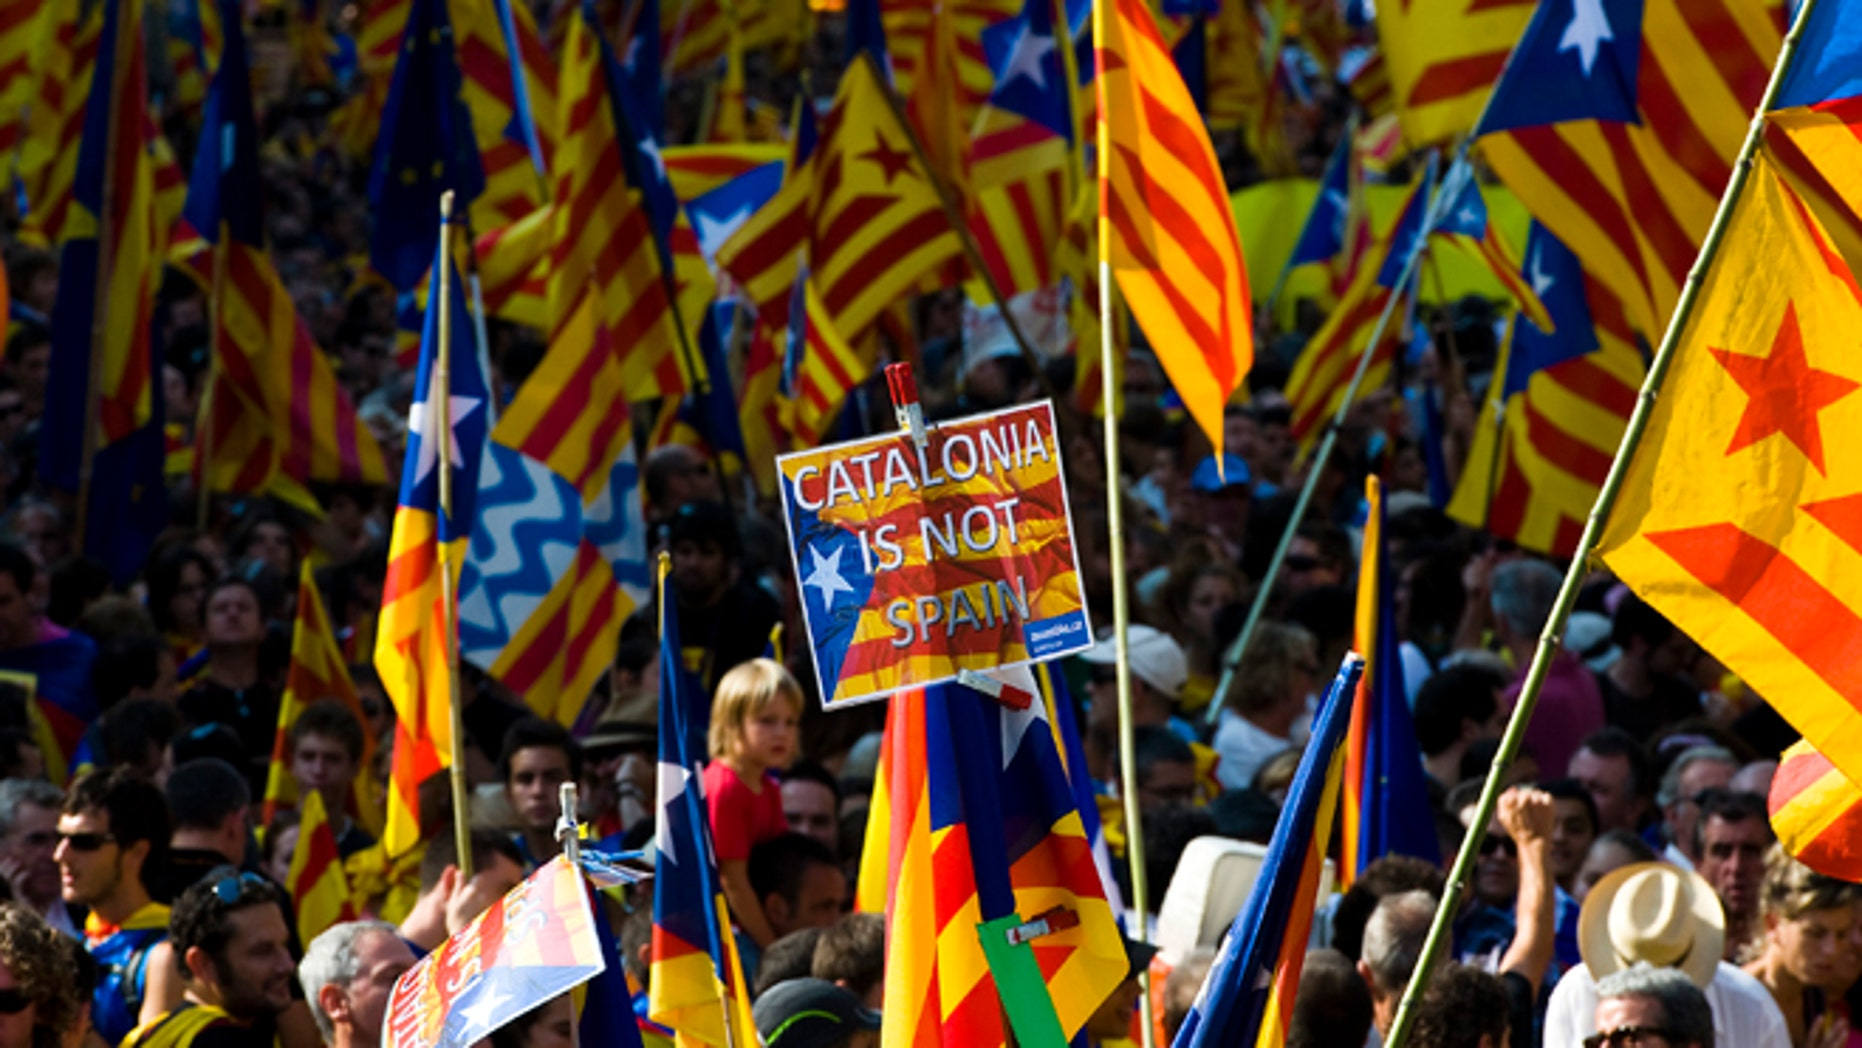 BARCELONA, SPAIN - SEPTEMBER 11:  People hold Pro-independence Catalan flags in a demonstration calling for independence during the Catalonia's National Day on September 11, 2012 in Barcelona, Spain. Thousands of Catalans took to the streets of Barcelona demanding a split from Spain and control of their own economy under the slogan 'Catalonia: New European State' on Catalonia's National Day. The Diada Nacional is held every September 11 to remember the defeat of the Catalan troops in 1714.  (Photo by David Ramos/Getty Images)